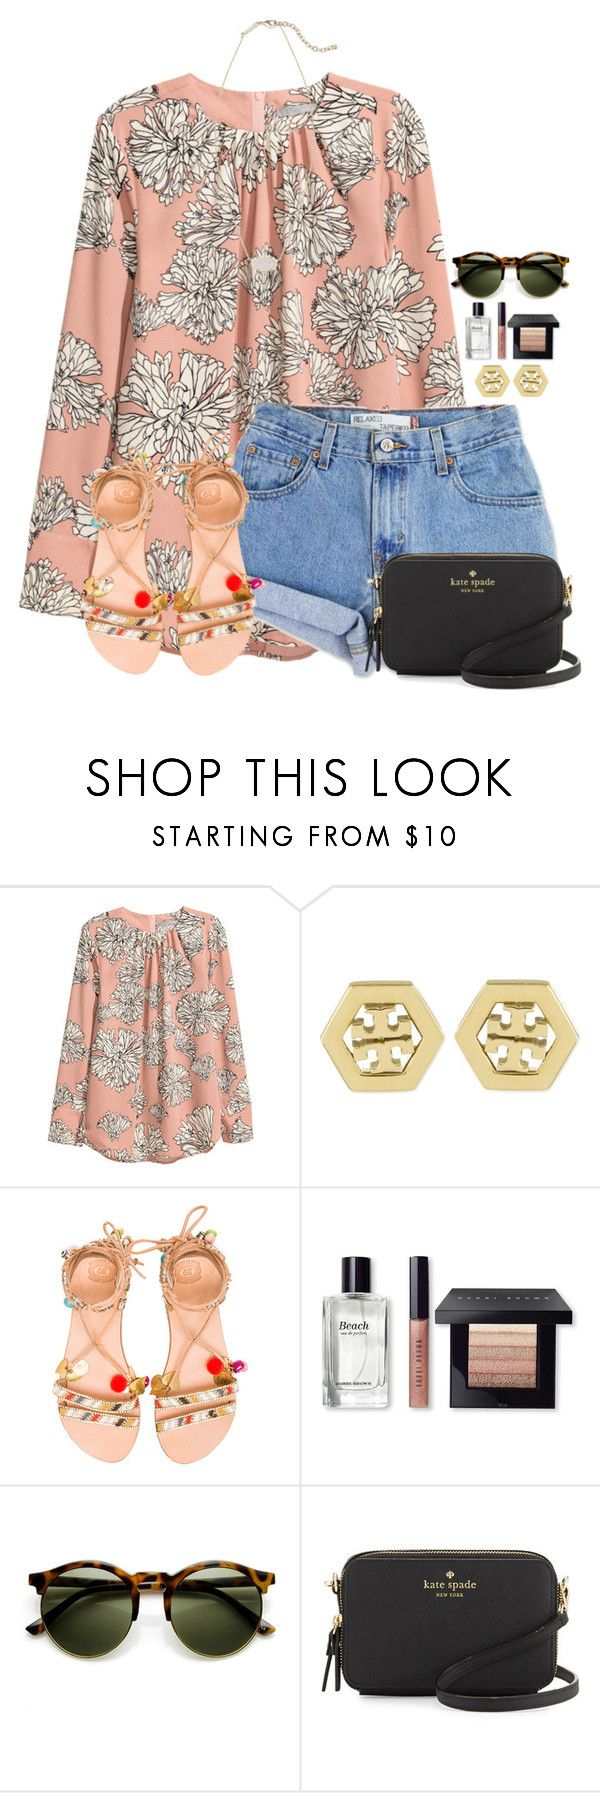 """3rd day of Spring Break!!"" by flroasburn ❤ liked on Polyvore featuring Levi's, Tory Burch, Elina Linardaki, Bobbi Brown Cosmetics, Kate Spade and Kendra Scott"